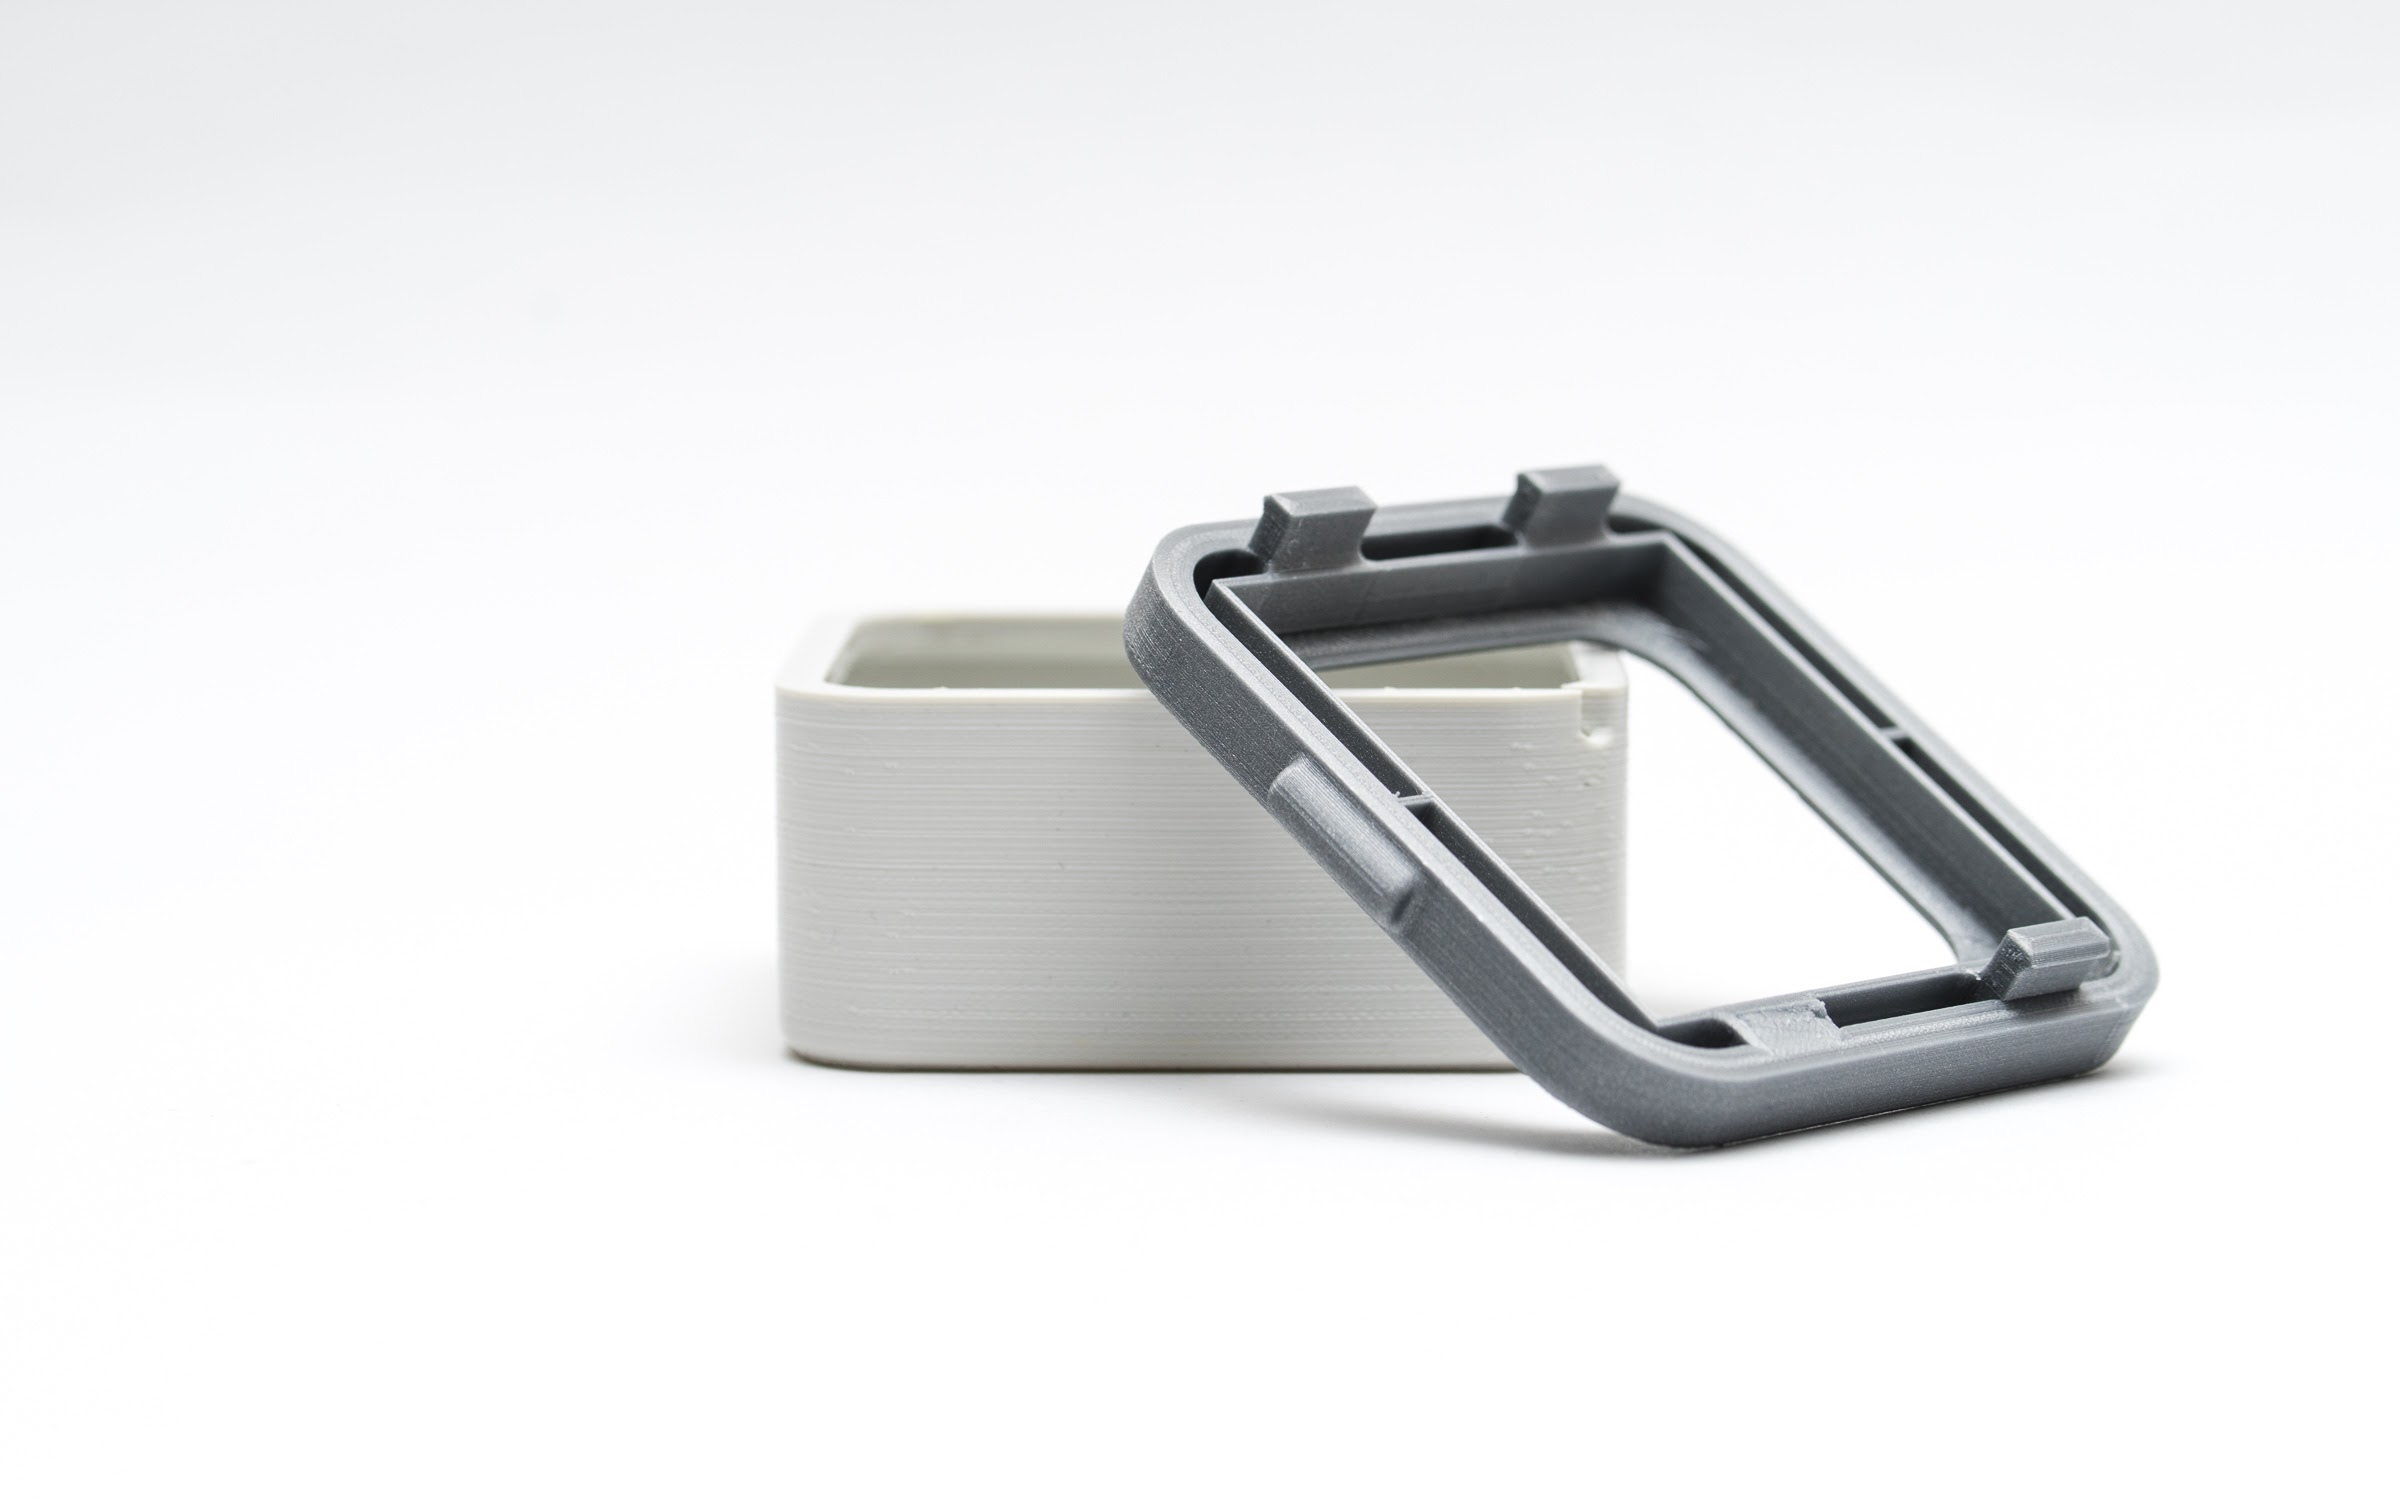 Snap-fits are regularly used for securing 3D printed enclosures